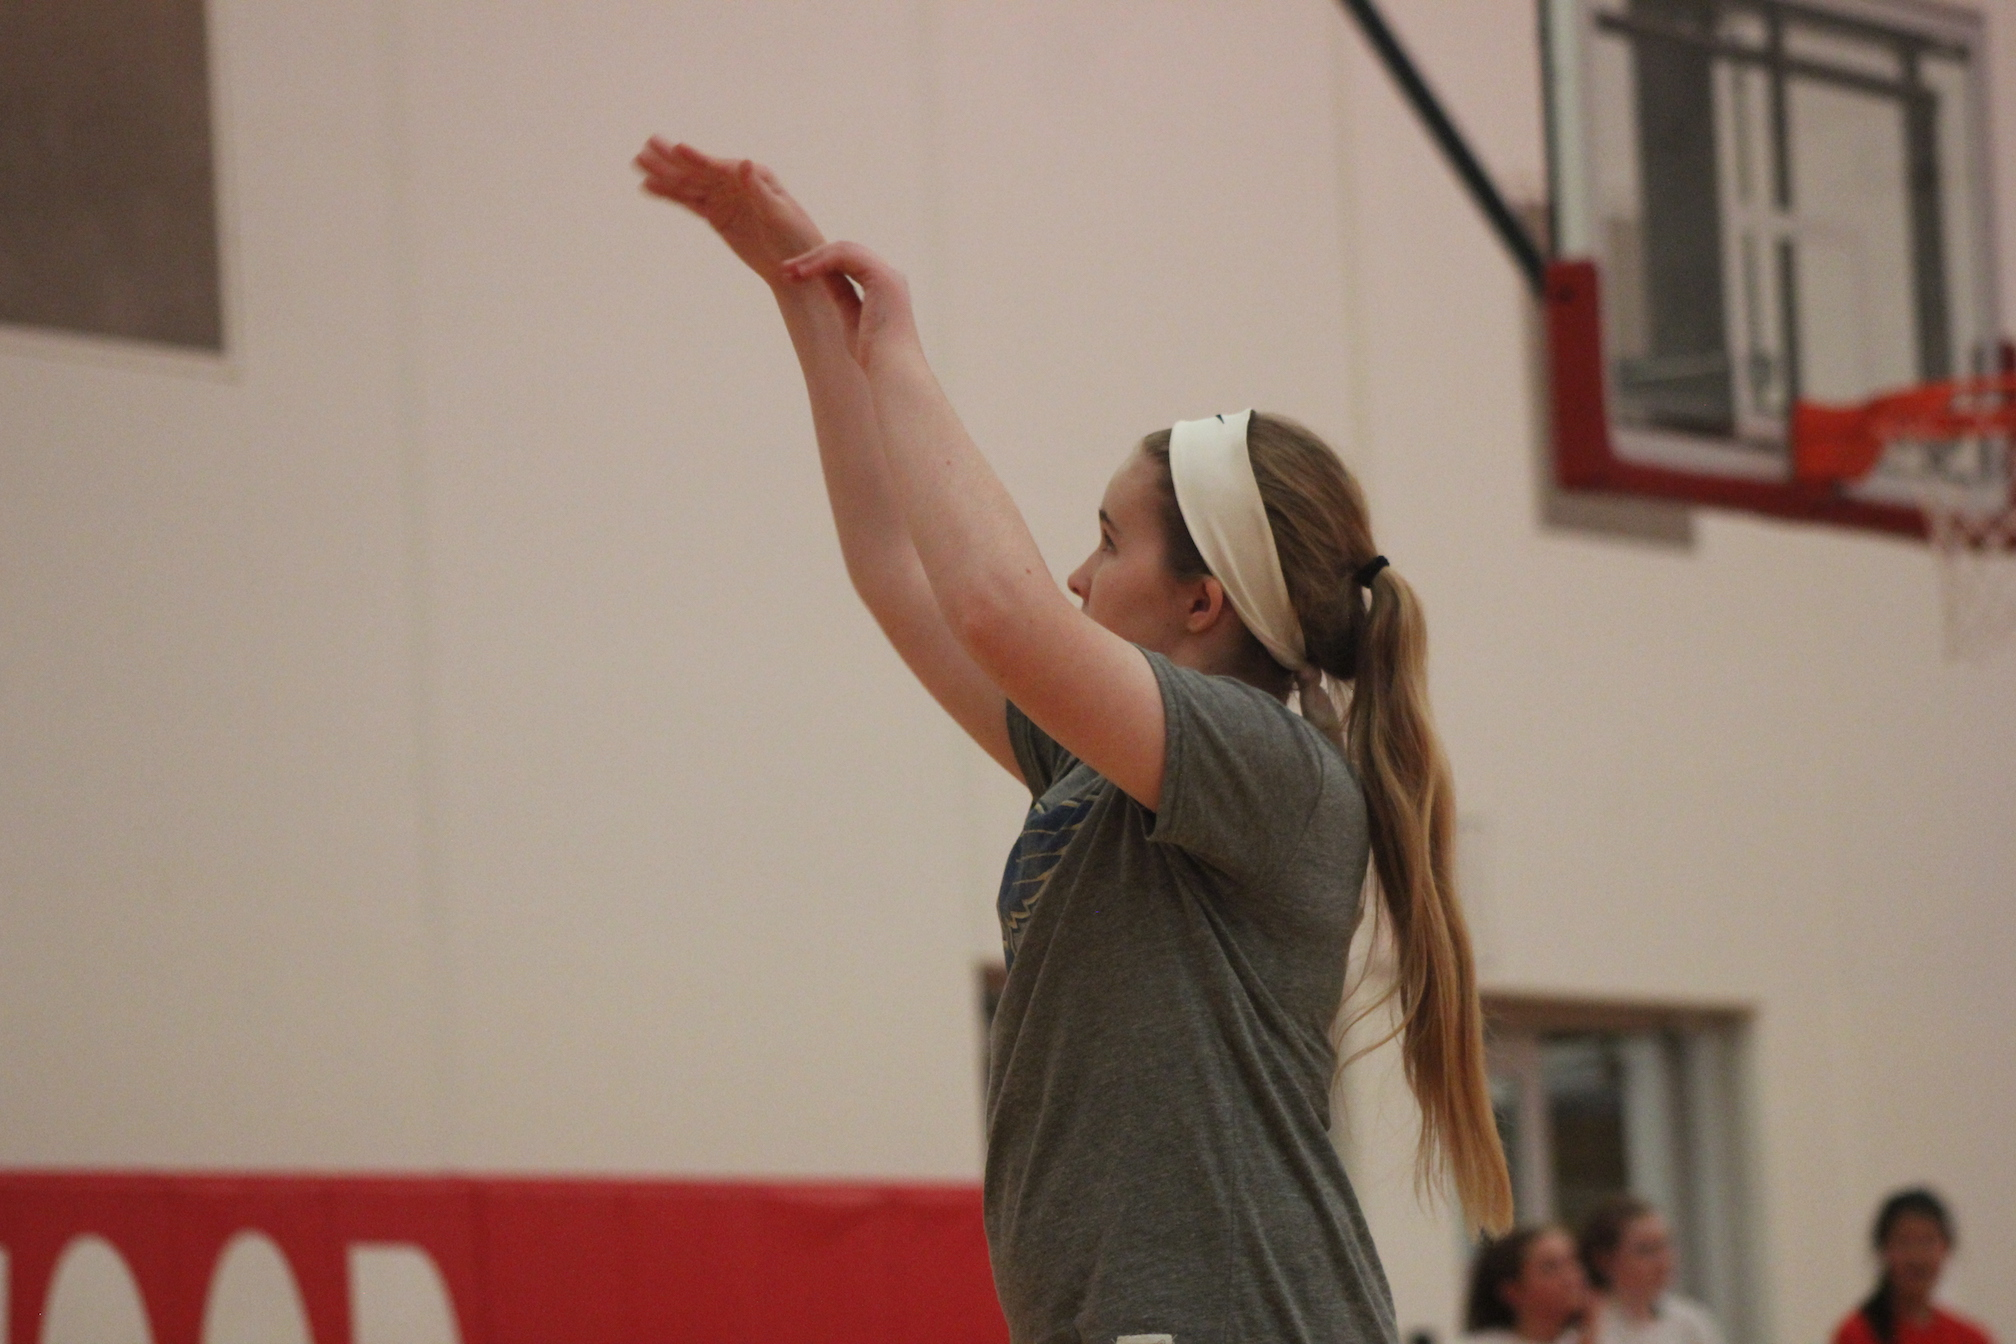 Emily+Hovey%2C+sophomore%2C+aims+and+shoots+the+ball+during+JV+girls+basketball+practice.+%22%5BI+am%5D+very+excited+for+this+upcoming+basketball+season%2C%22+Hovey+said.+%22I%27m+looking+forward+to+doing+everything+I+can+to+become+a+better+player.%22